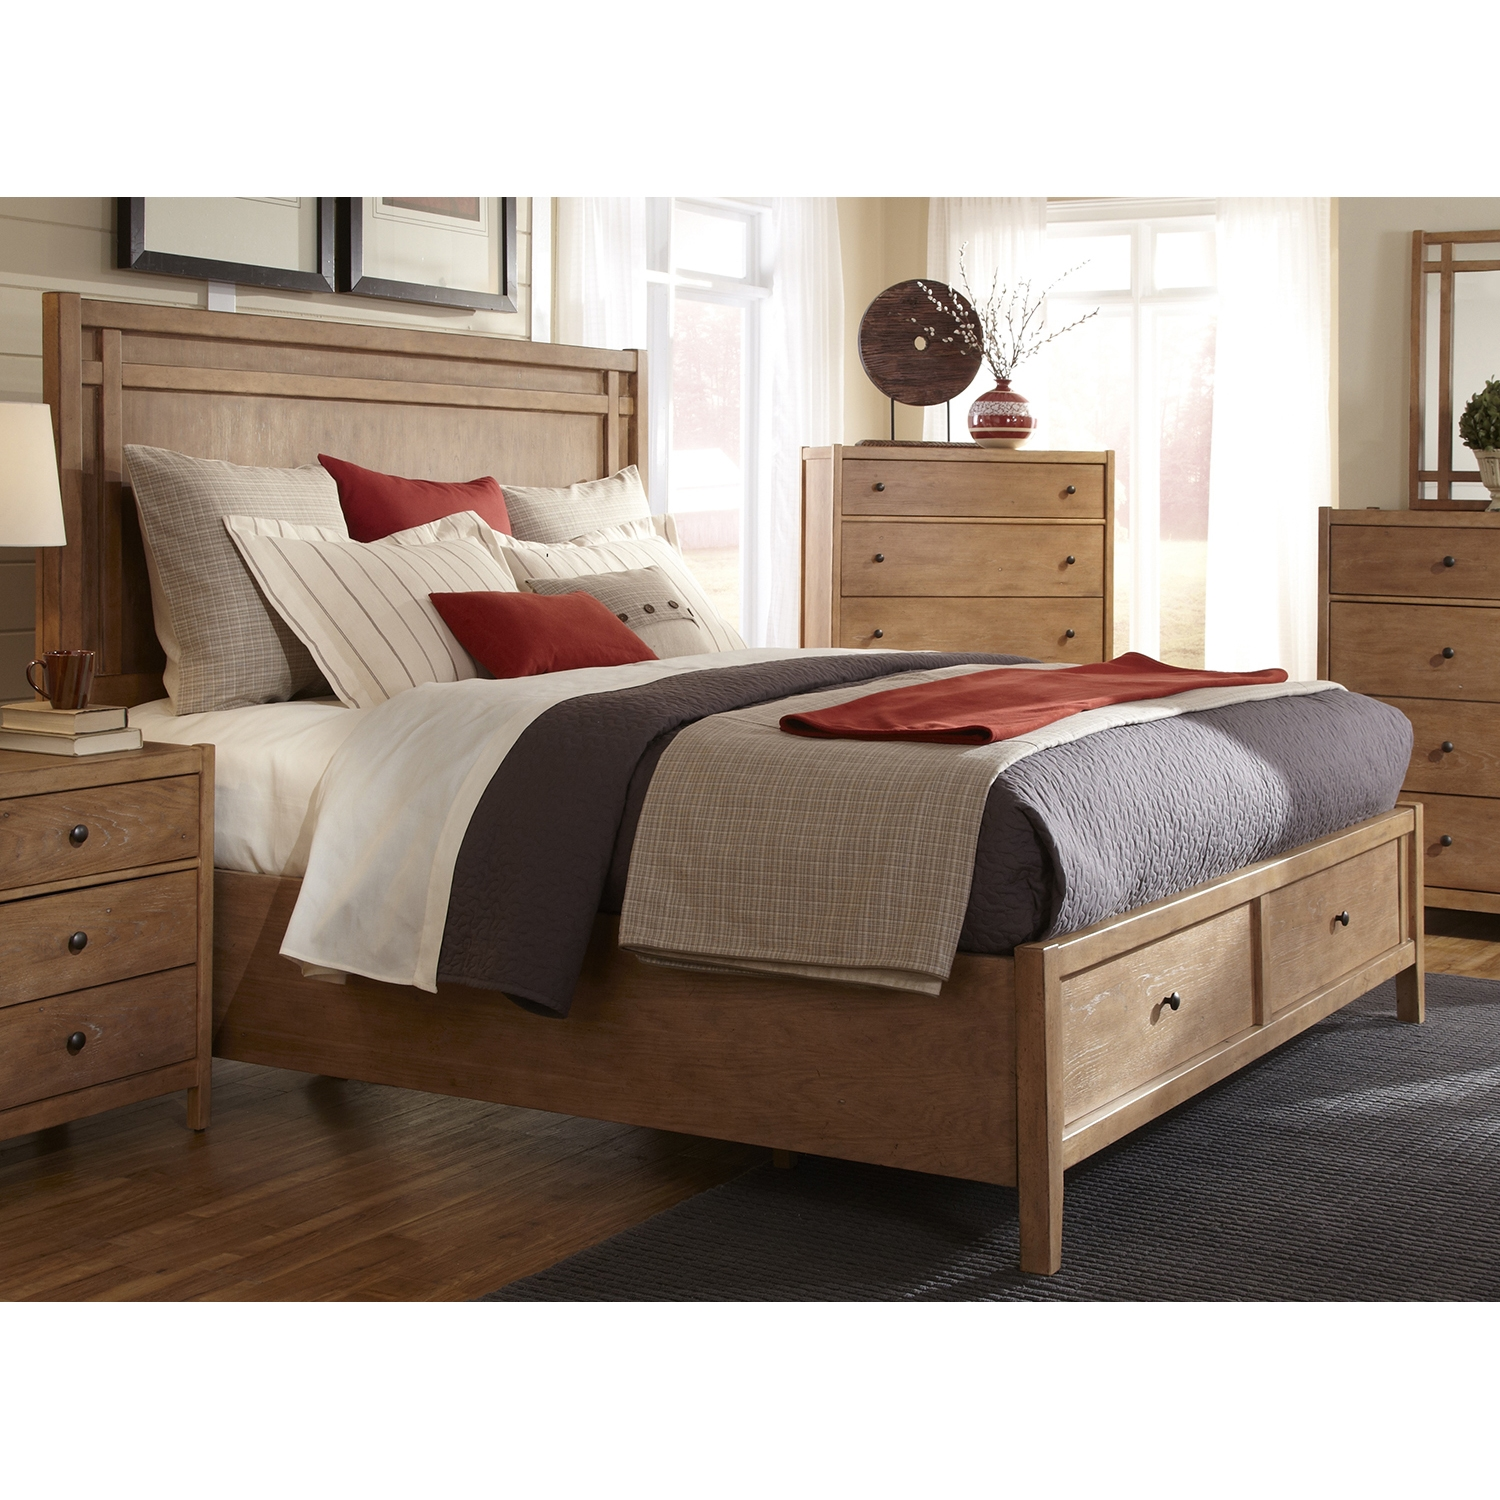 Natural Elements Queen Panel Storage Bed In Soft Driftwood